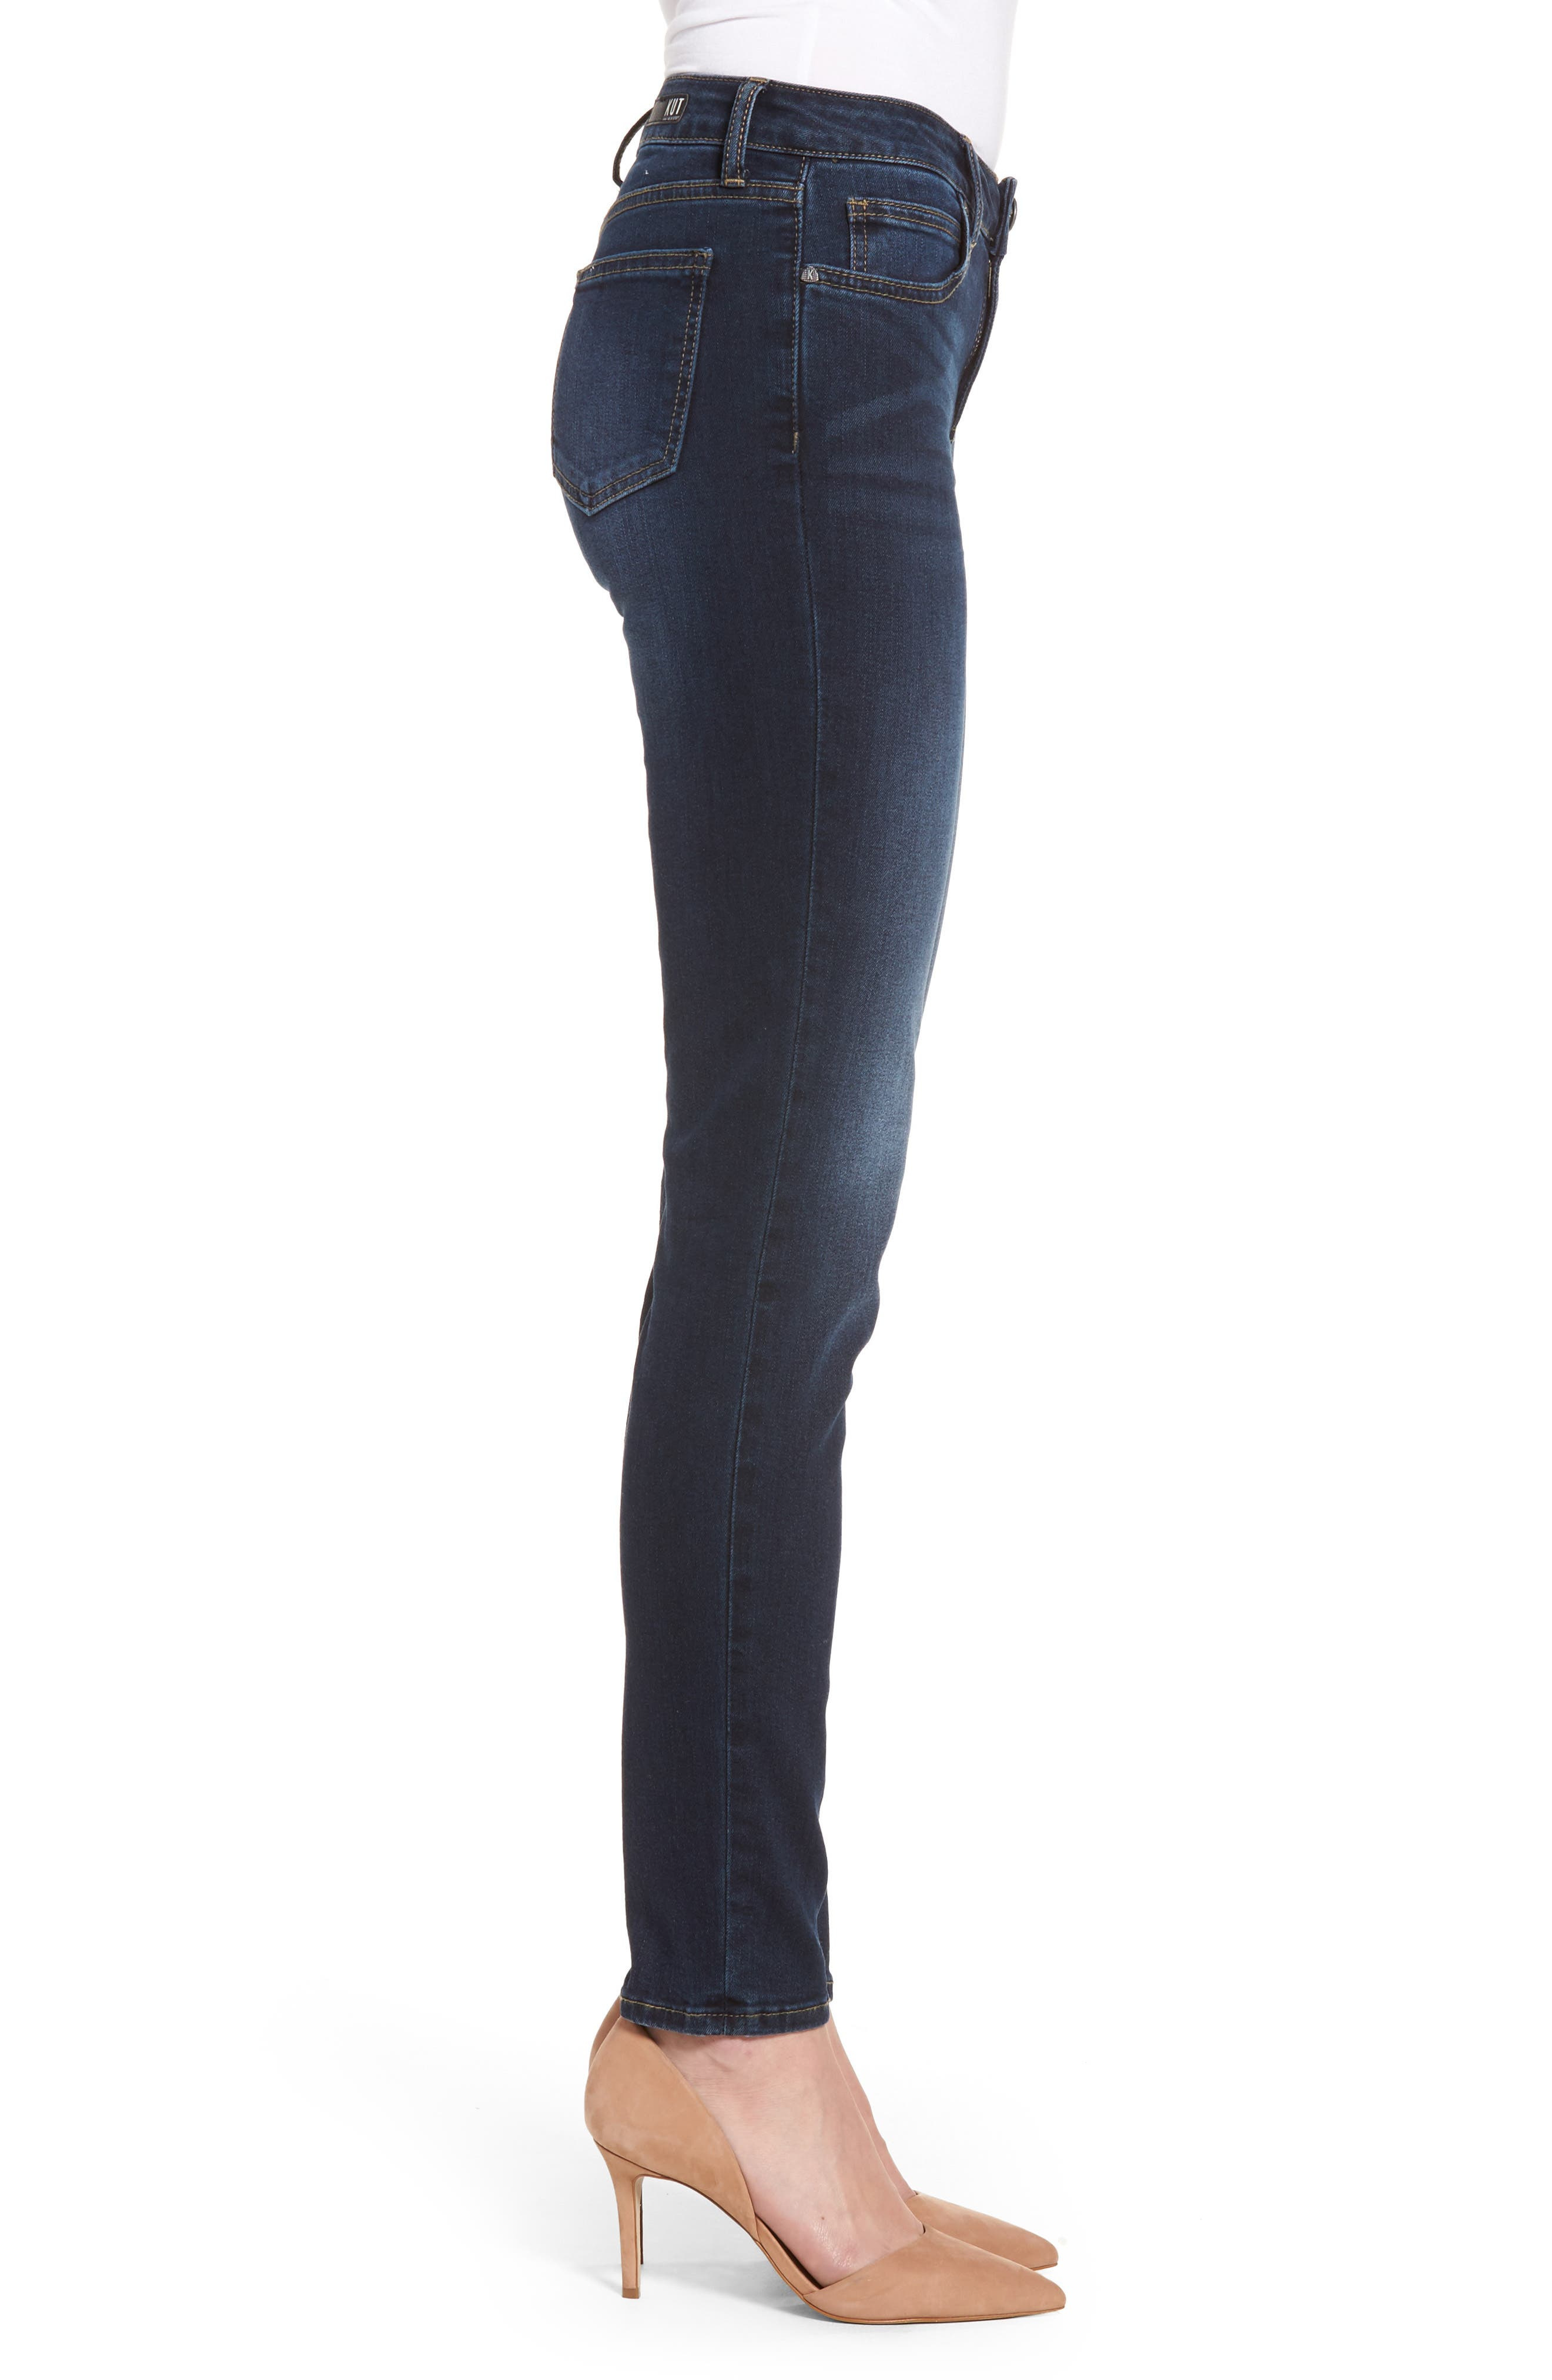 Diana Curvy Fit Skinny Jeans,                             Alternate thumbnail 3, color,                             473